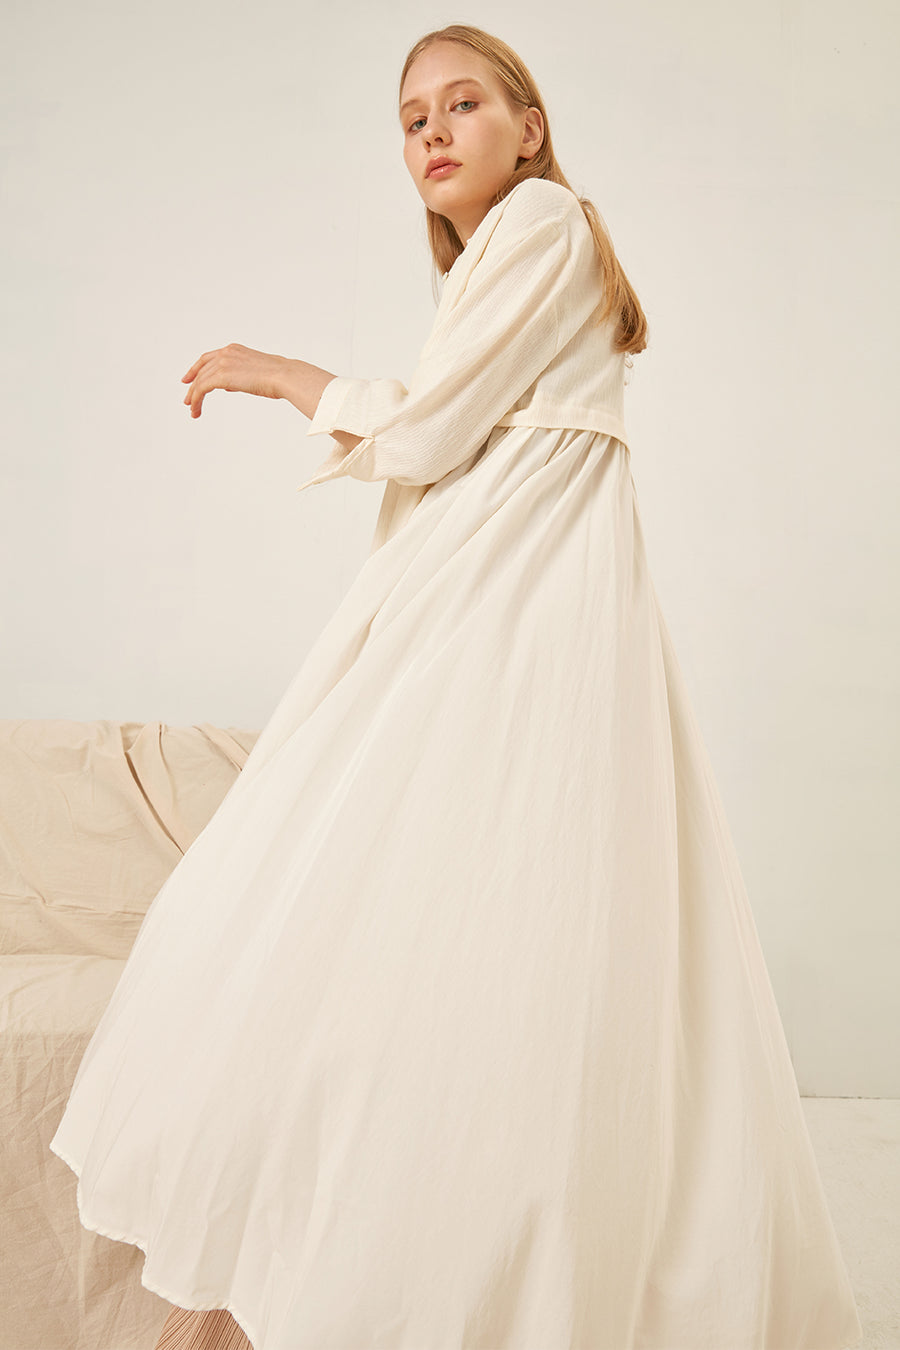 Linen cotton-blend long dress - Zelle Studio